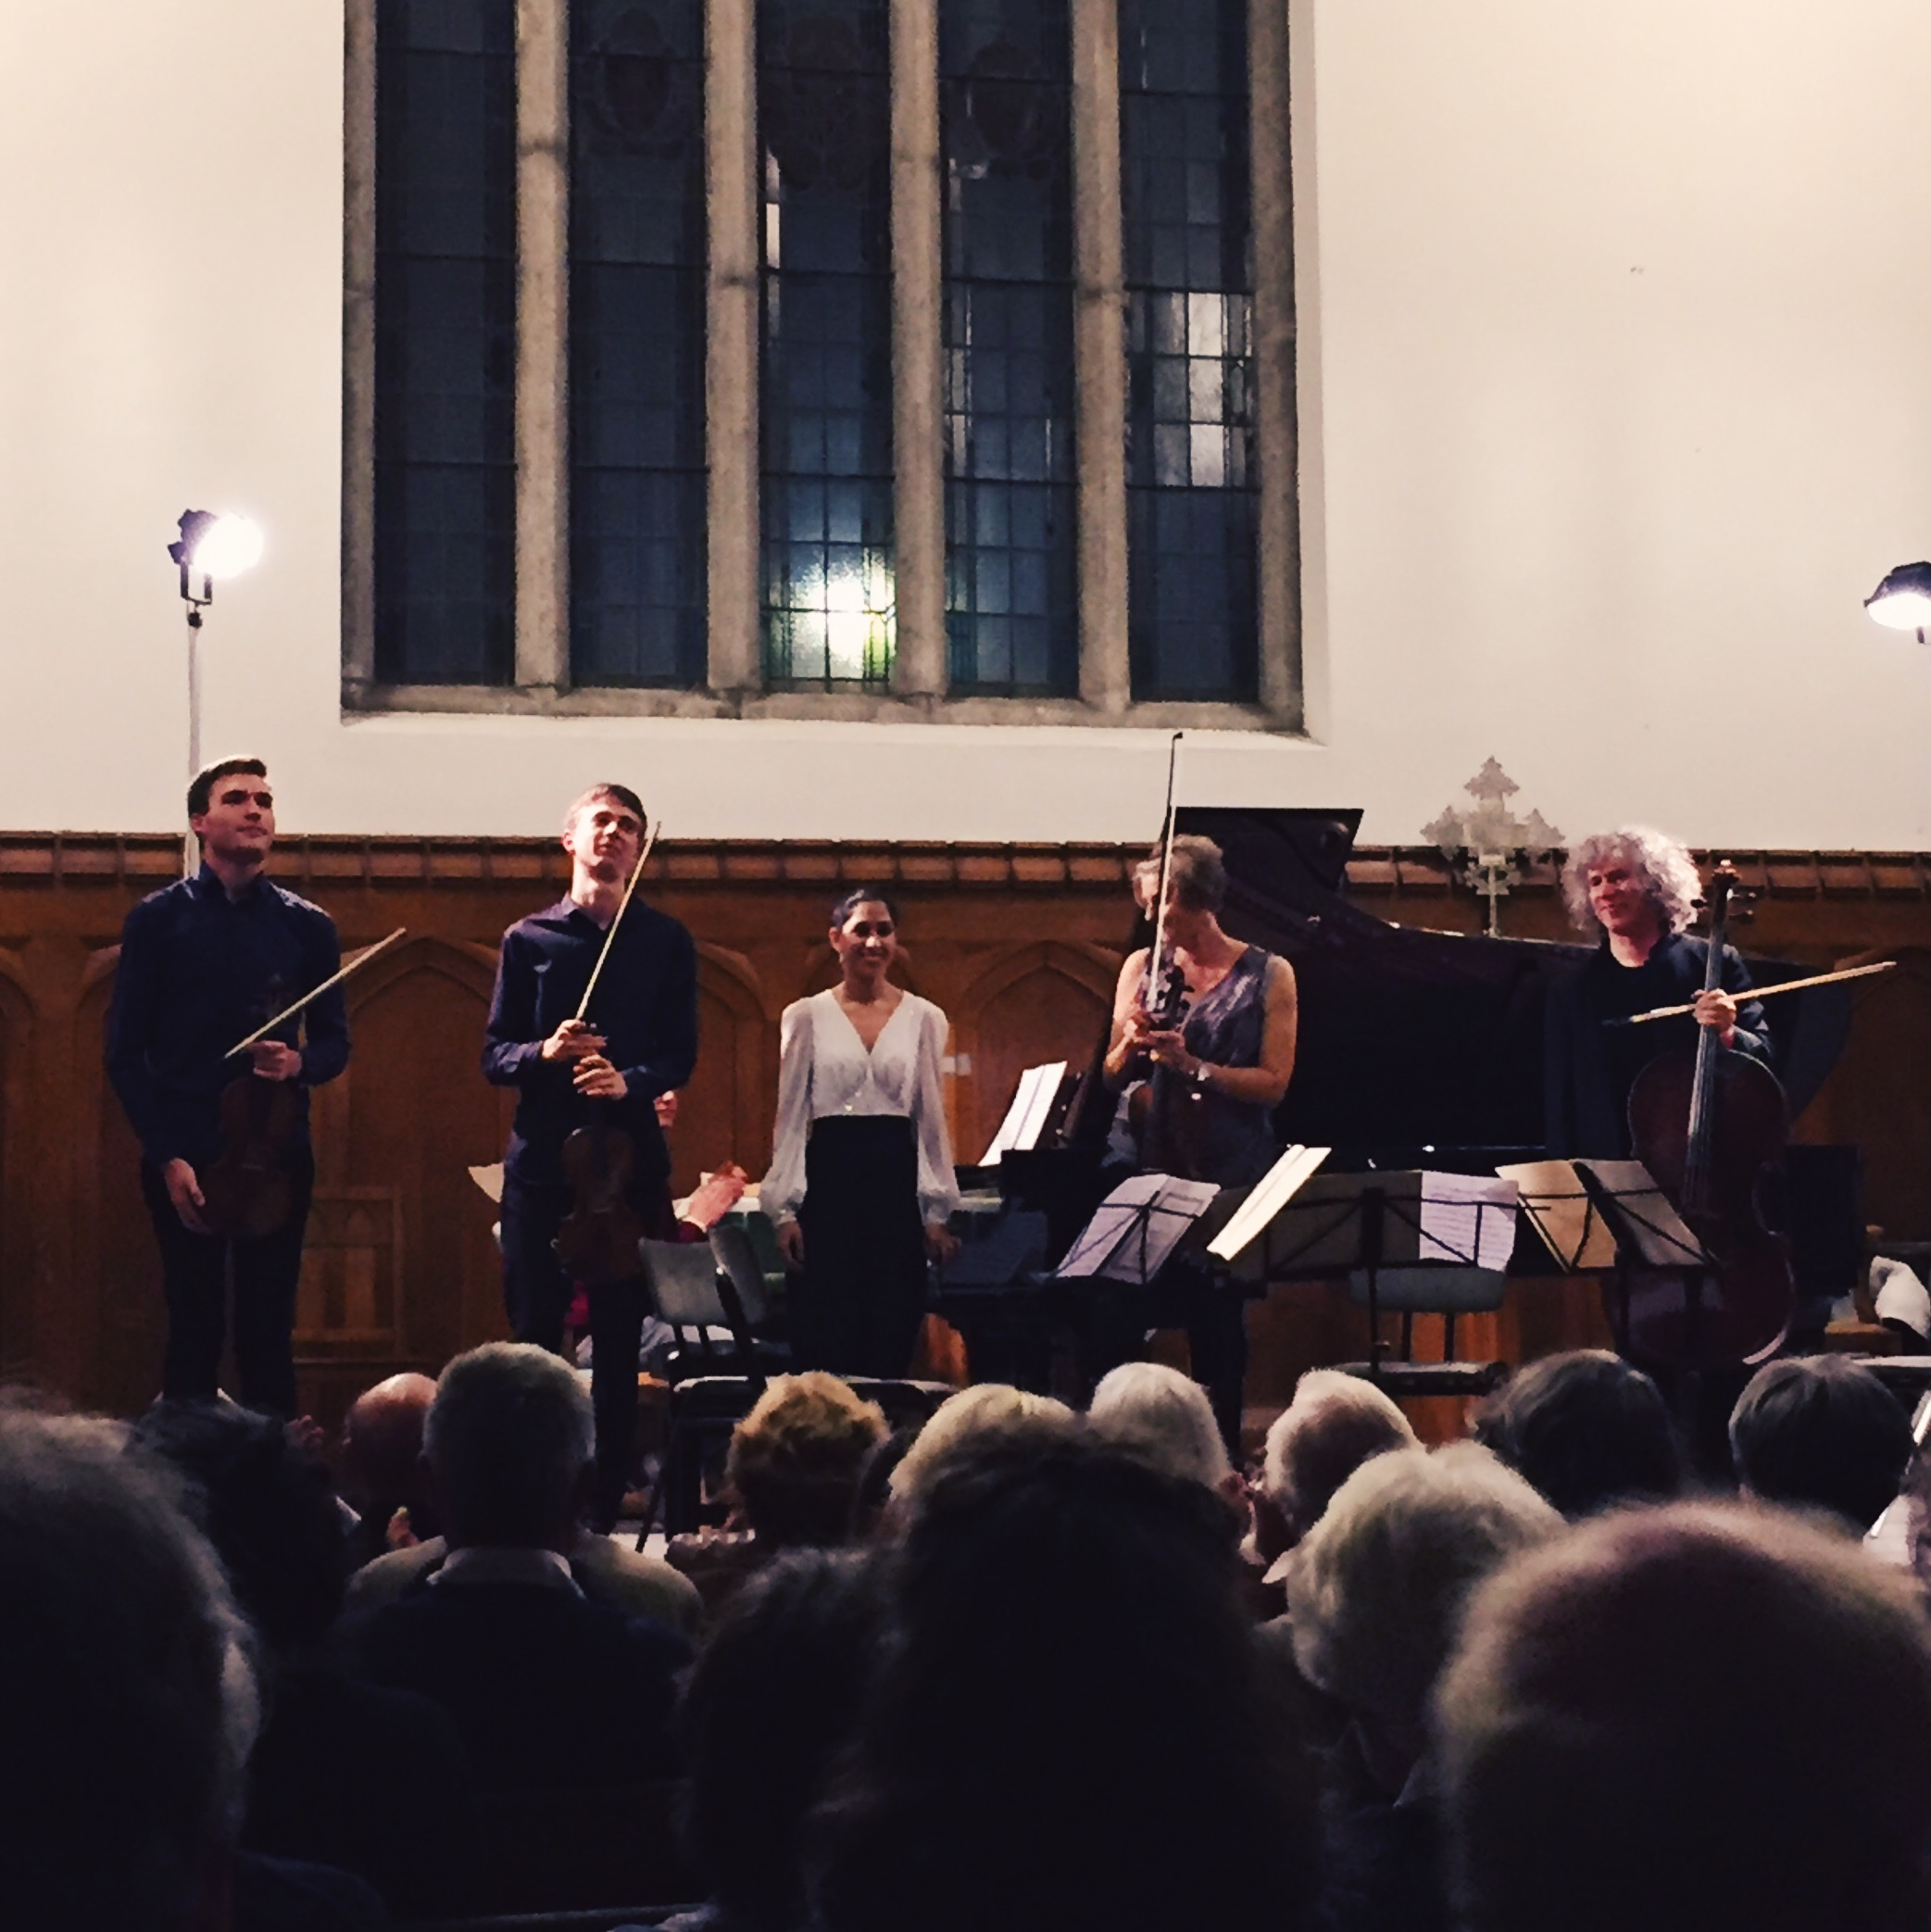 Alexi Kenney, Myself, Mishka Momen, Clare Finnimore and Steven Isserlis performing Bloch Piano Quintet No.1